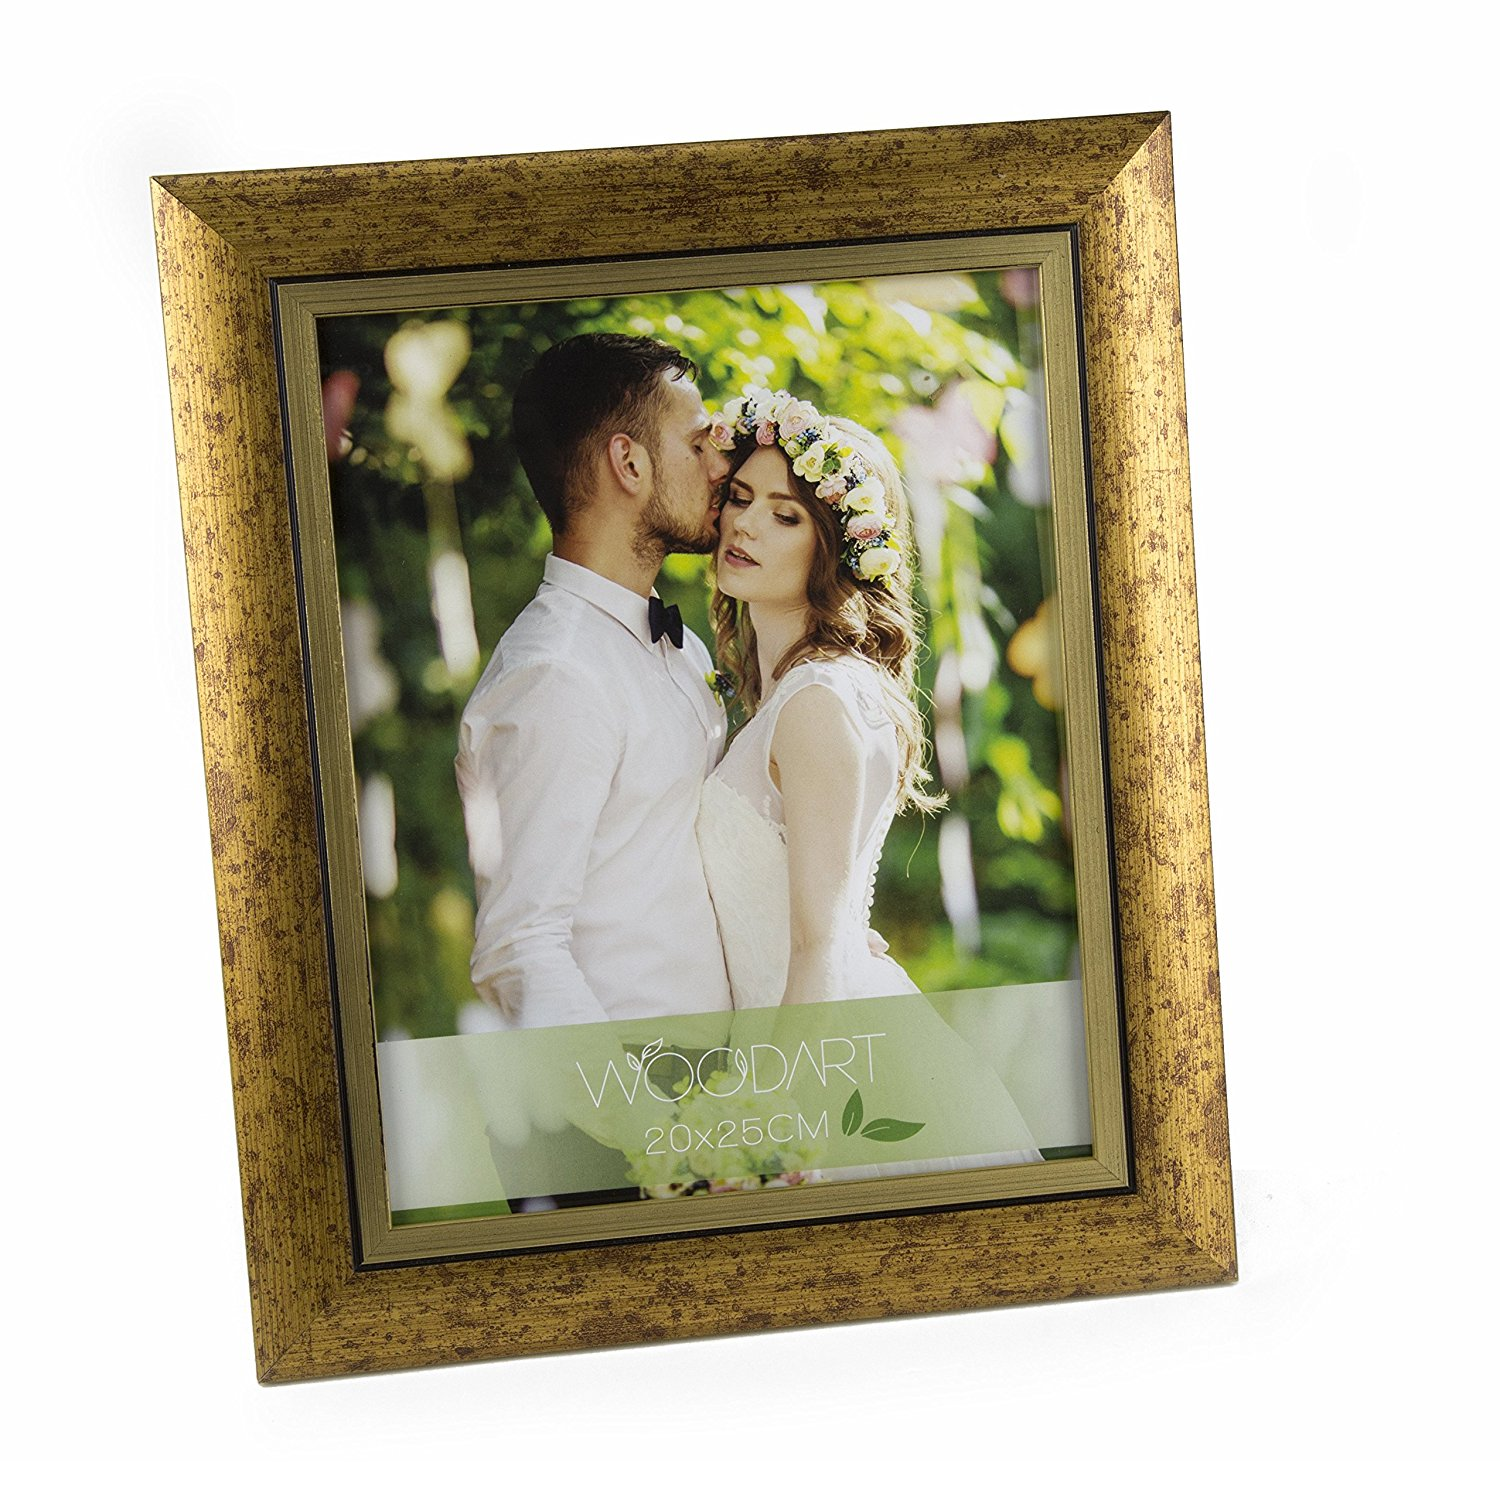 "WoodArt Crafted Wooden Picture Frame (5x7"", Antique Gold)"